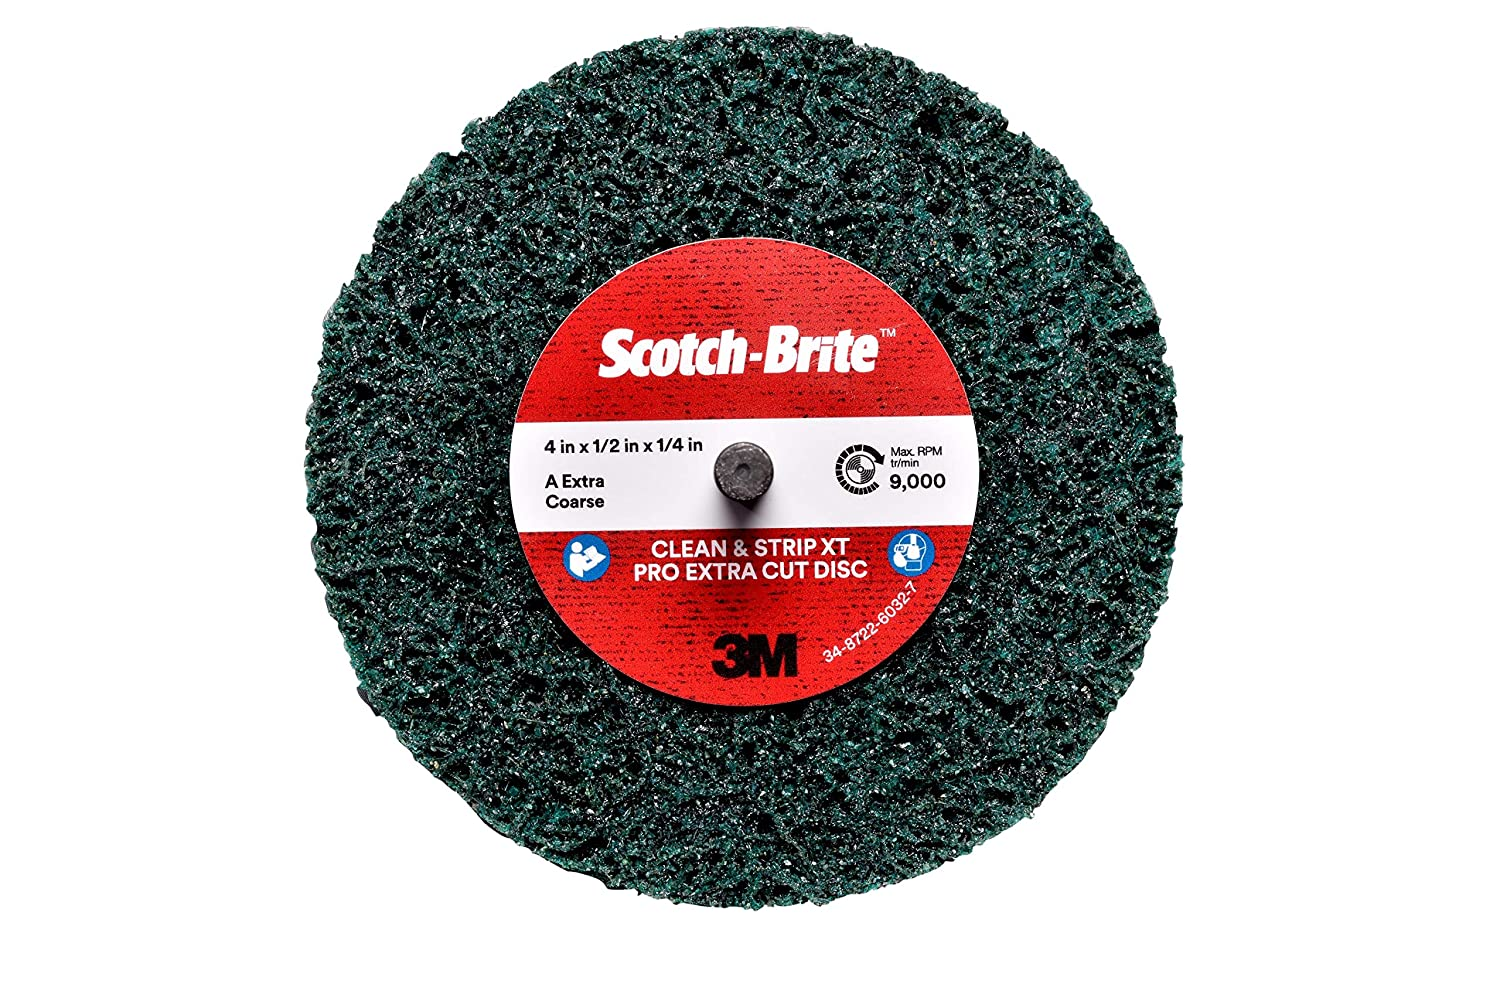 S XCS Scotch-Brite Clean and Strip XT Pro Disc 4 in x 1//2 in x 1//4 in 10 per case 3M Shaft Mount